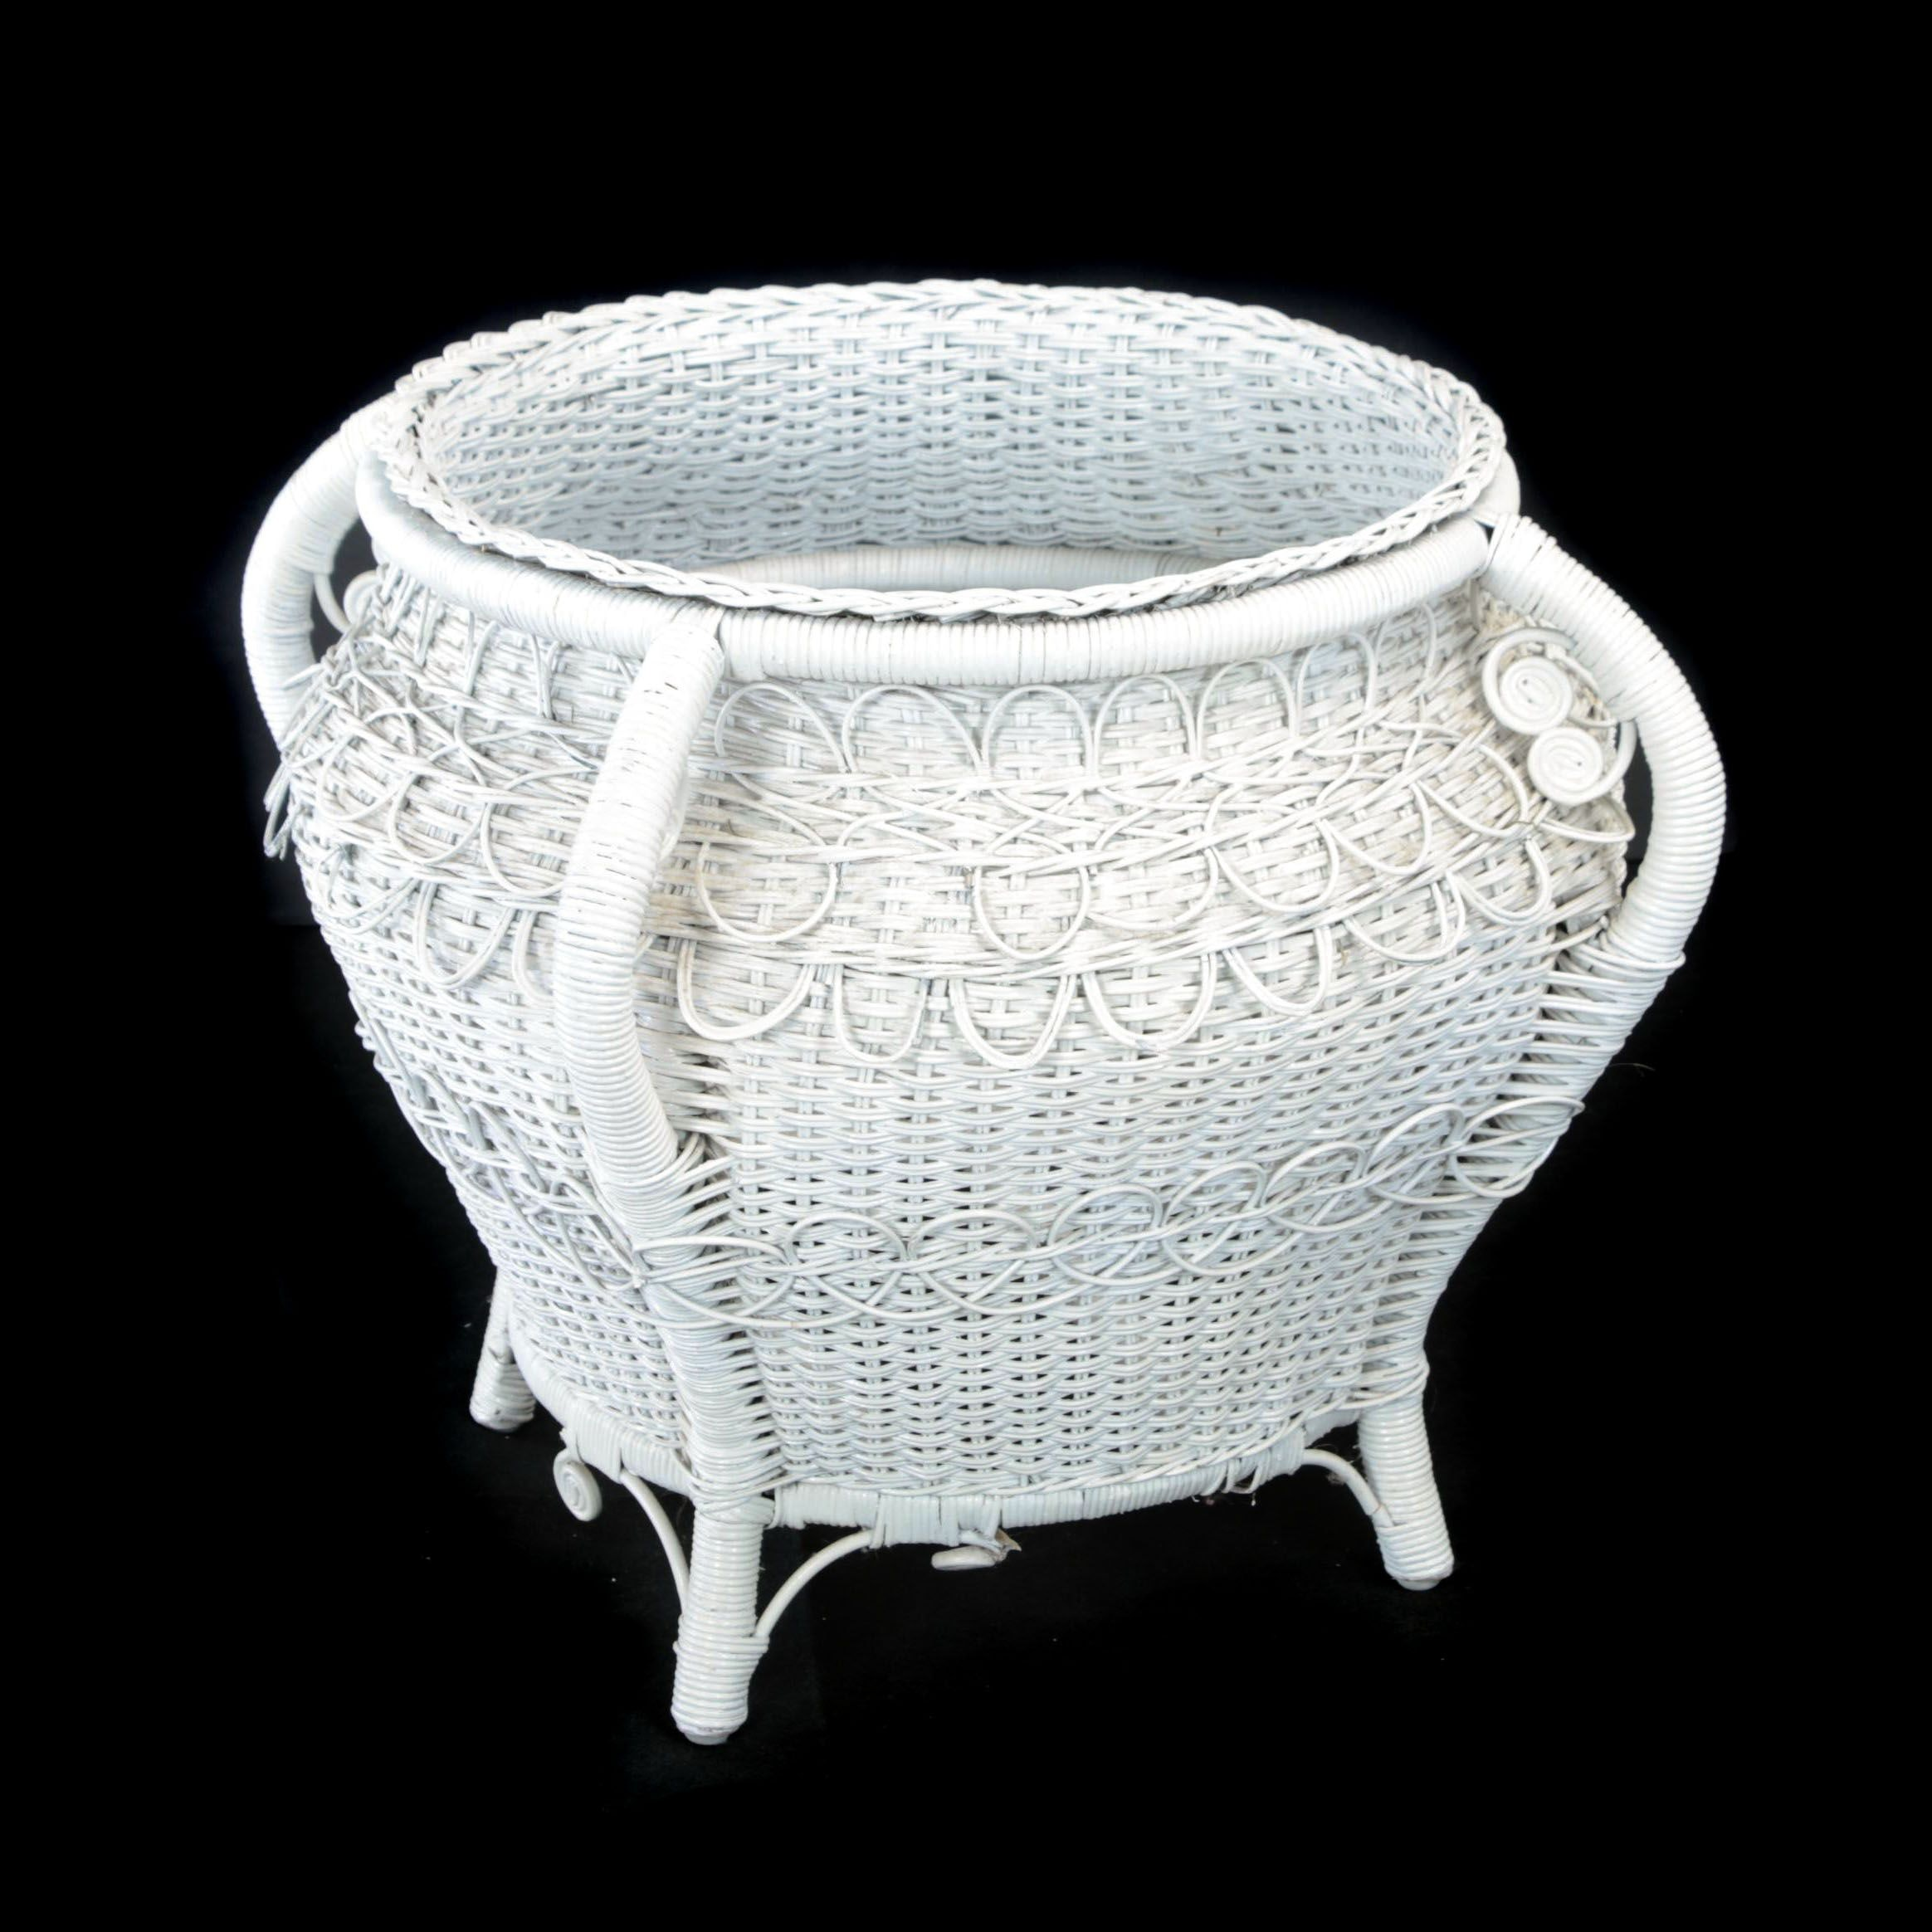 Late Victorian White Wicker Planter, Late 19th/Early 20th Century